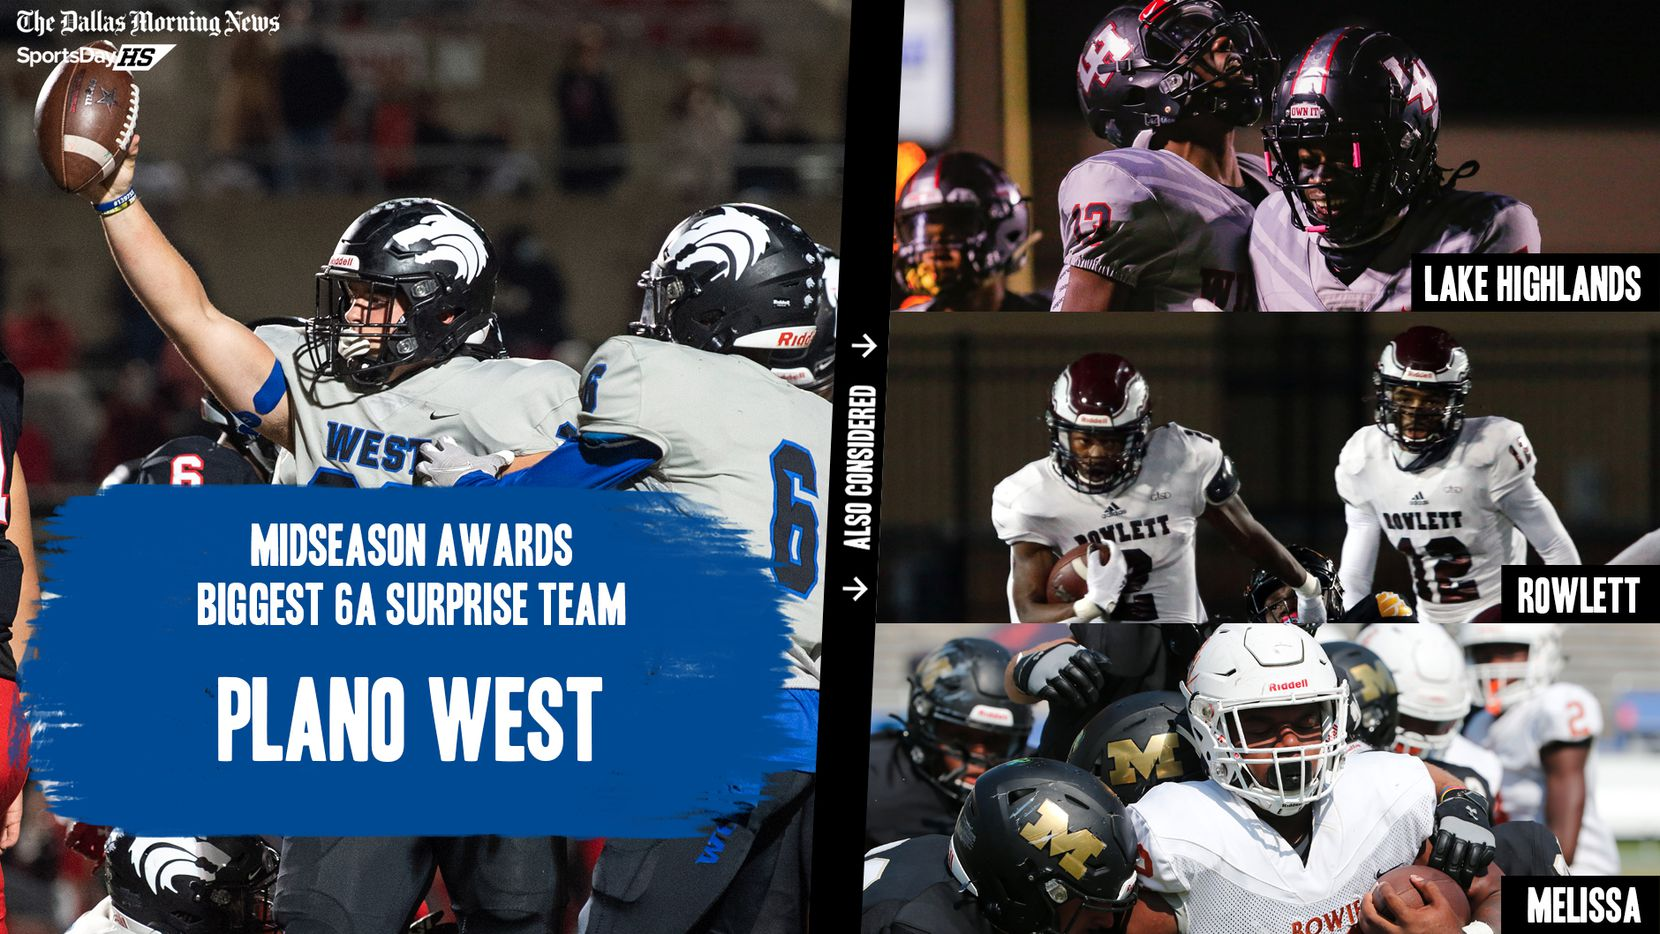 The Dallas Morning News' midseason awards for the 2020 football season: the biggest 6A surprise teams.